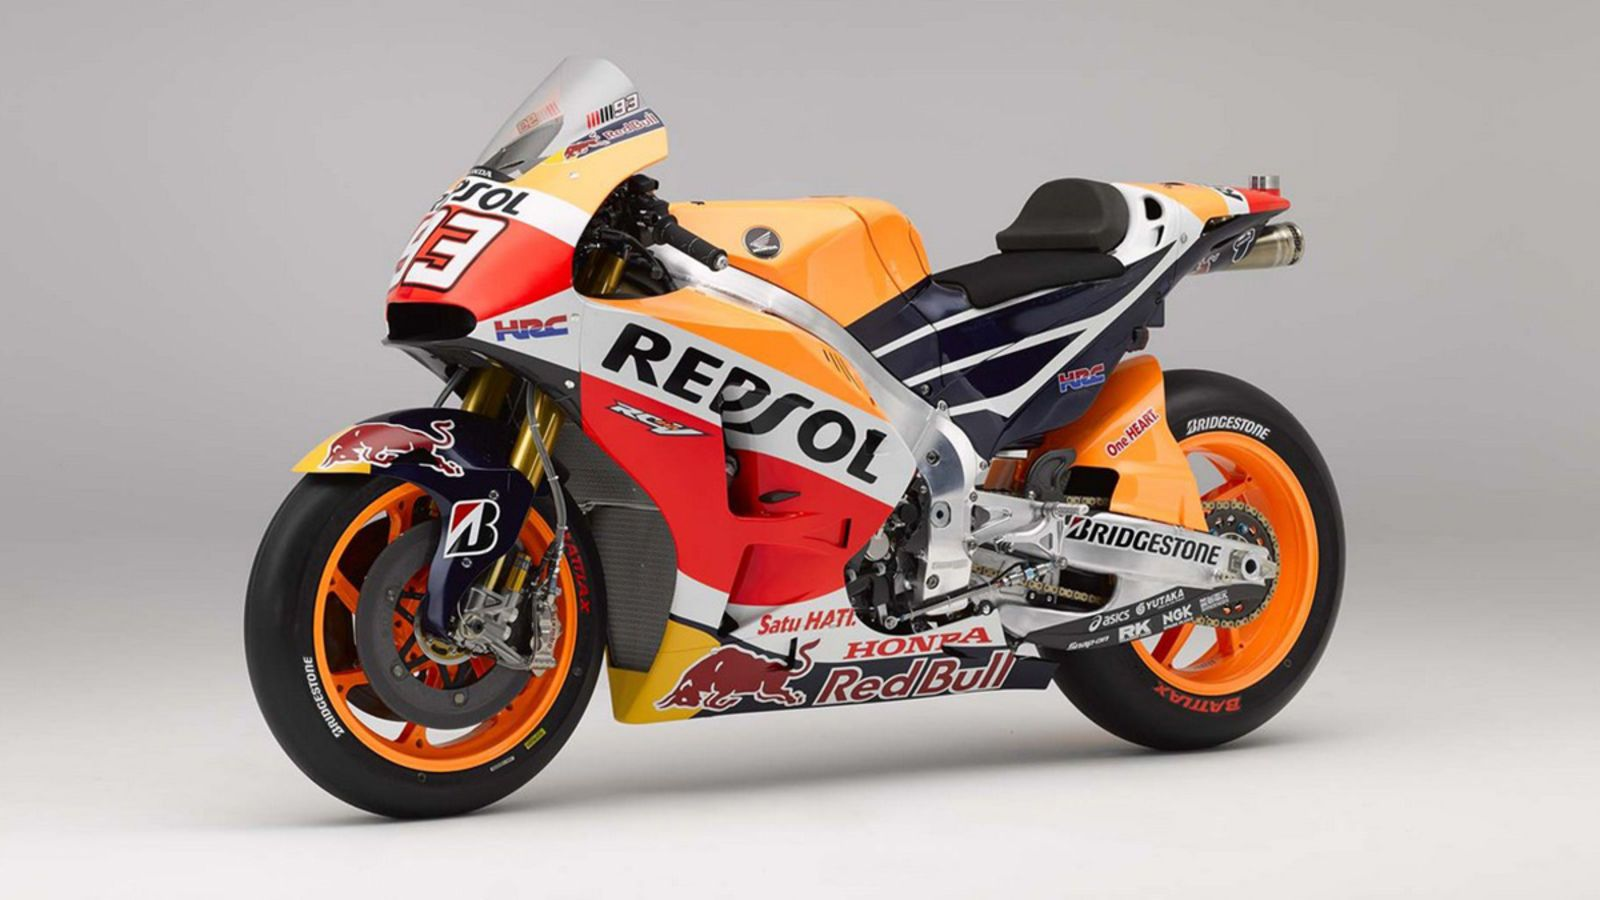 Honda Respol Marc Marquez 2015 #93 Moto GP 1:12 Model 57753 NEW RAY